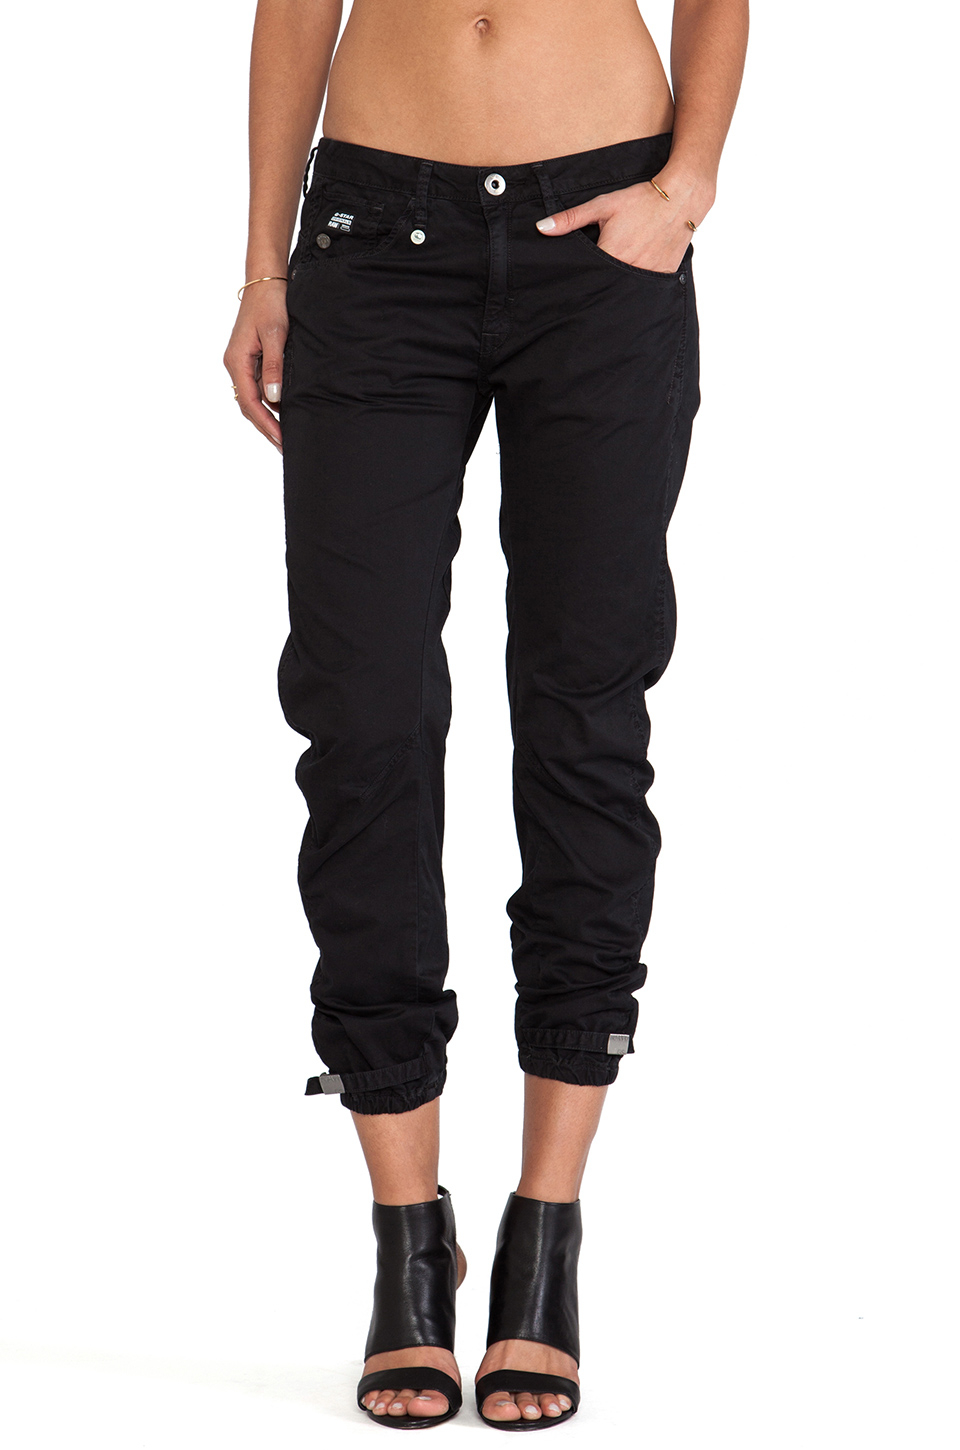 lyst g star raw arc 3d kate tapered pant in black. Black Bedroom Furniture Sets. Home Design Ideas